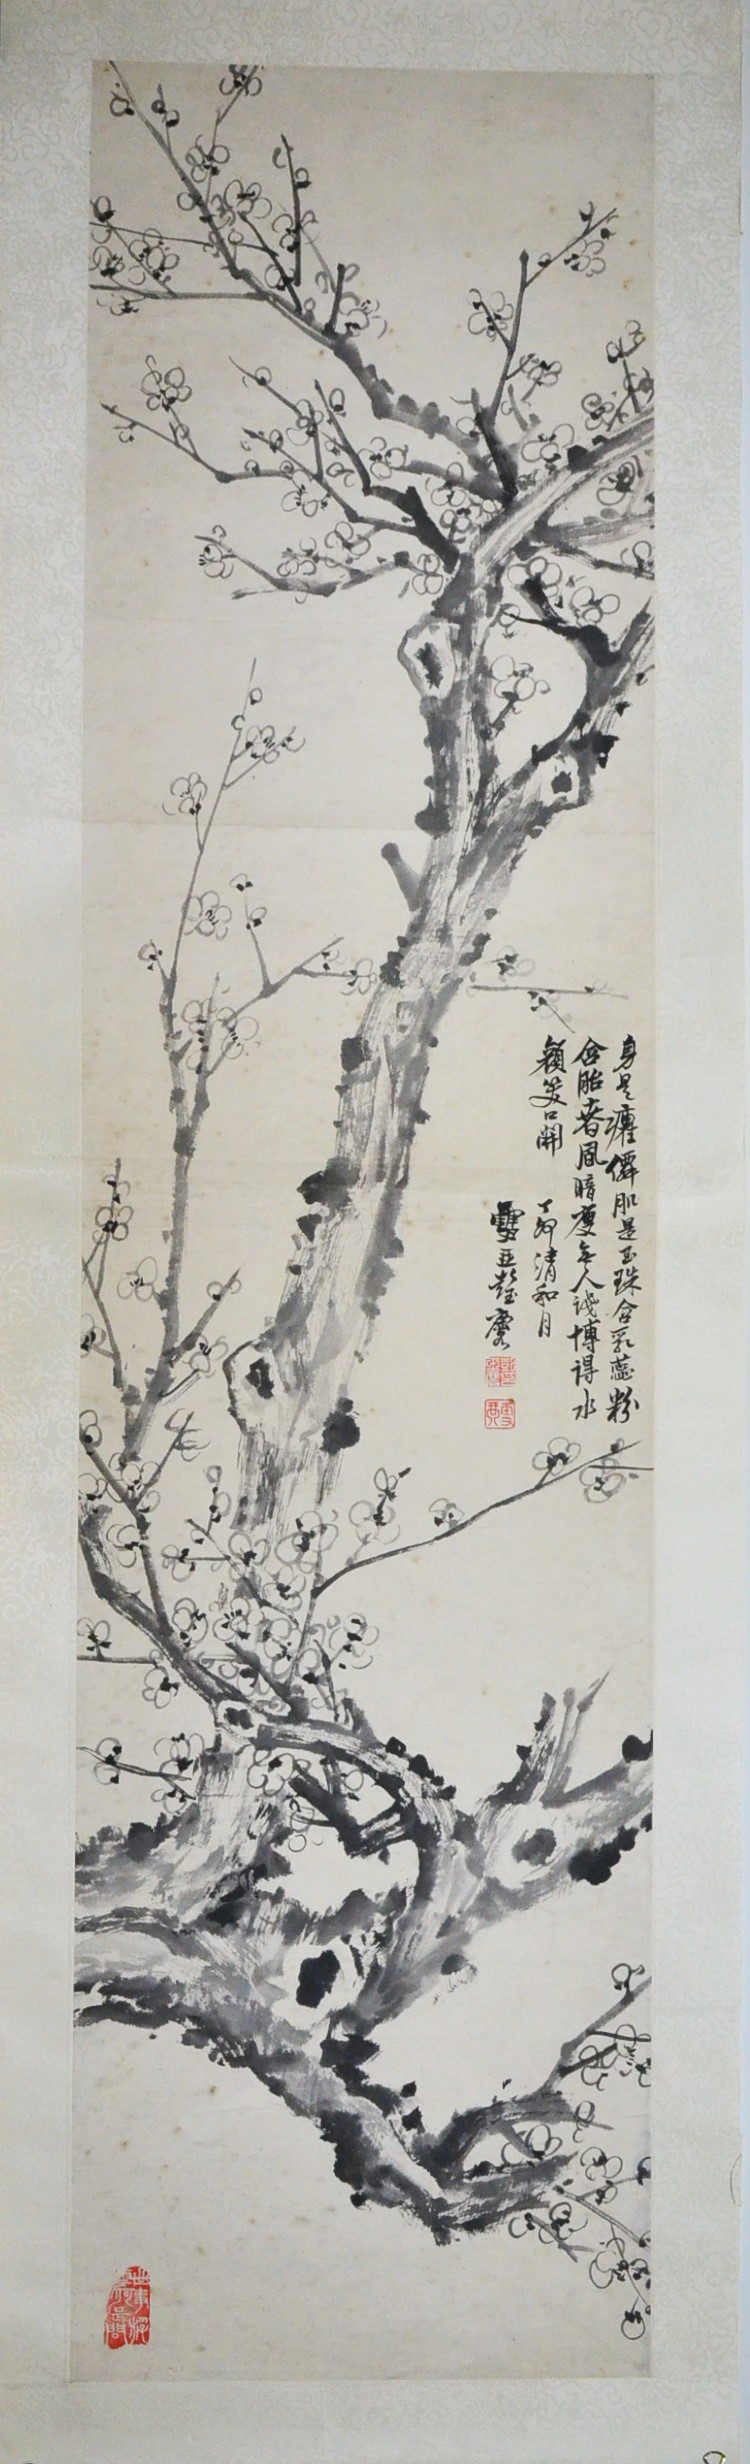 A FRAMED CHINESE PAINTING OF PLUM BLOSSOM BY PENG YU LIN